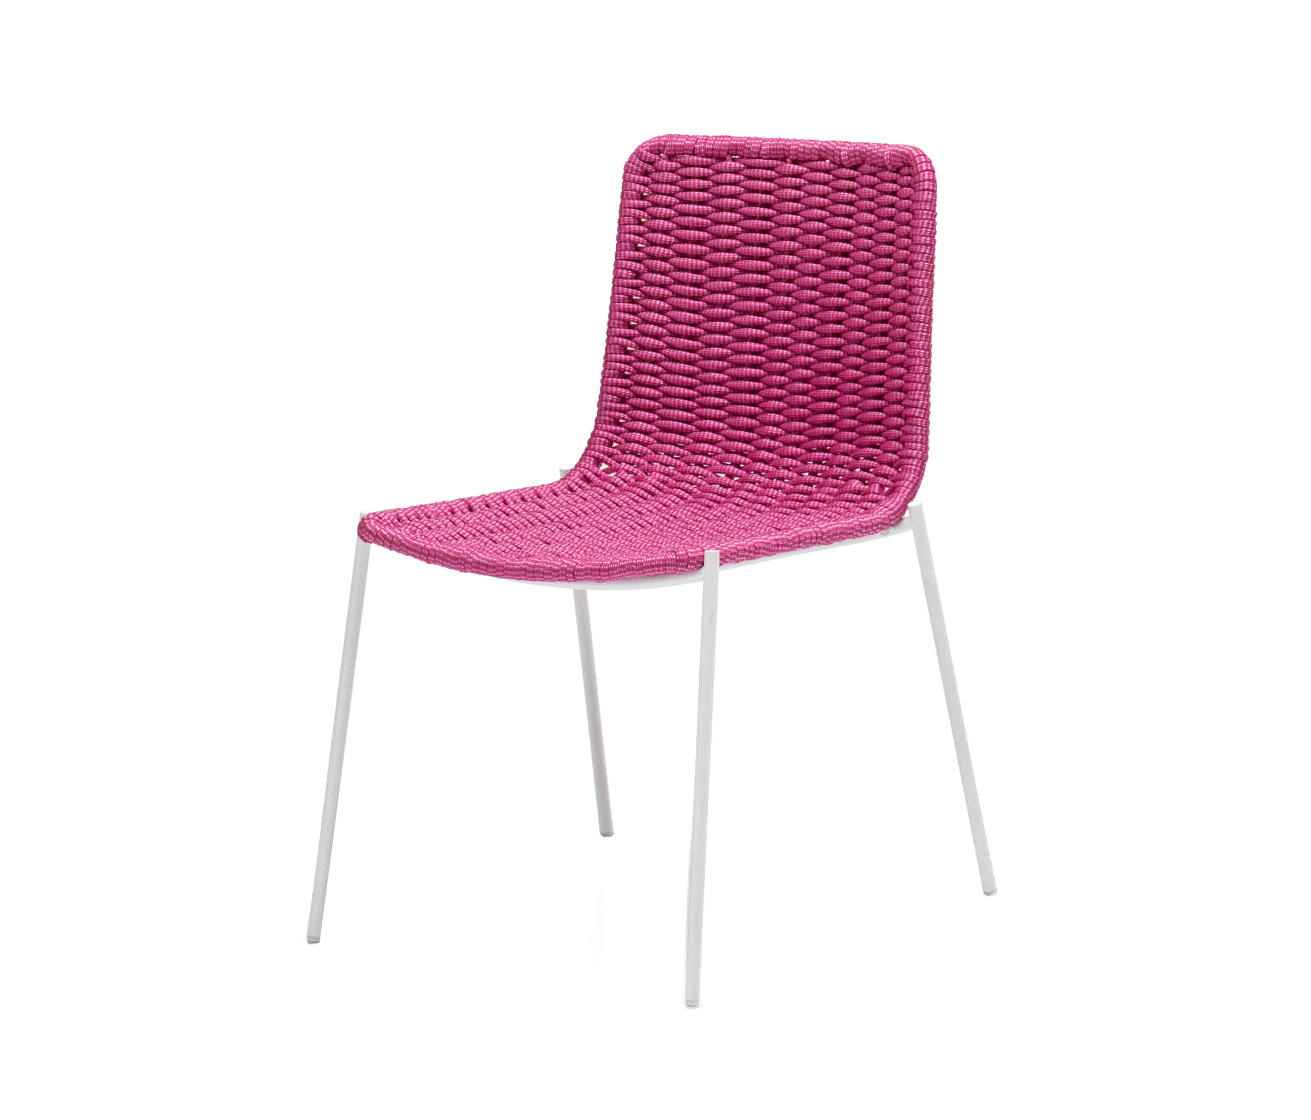 KITI | CHAIR - Chairs from Paola Lenti | Architonic